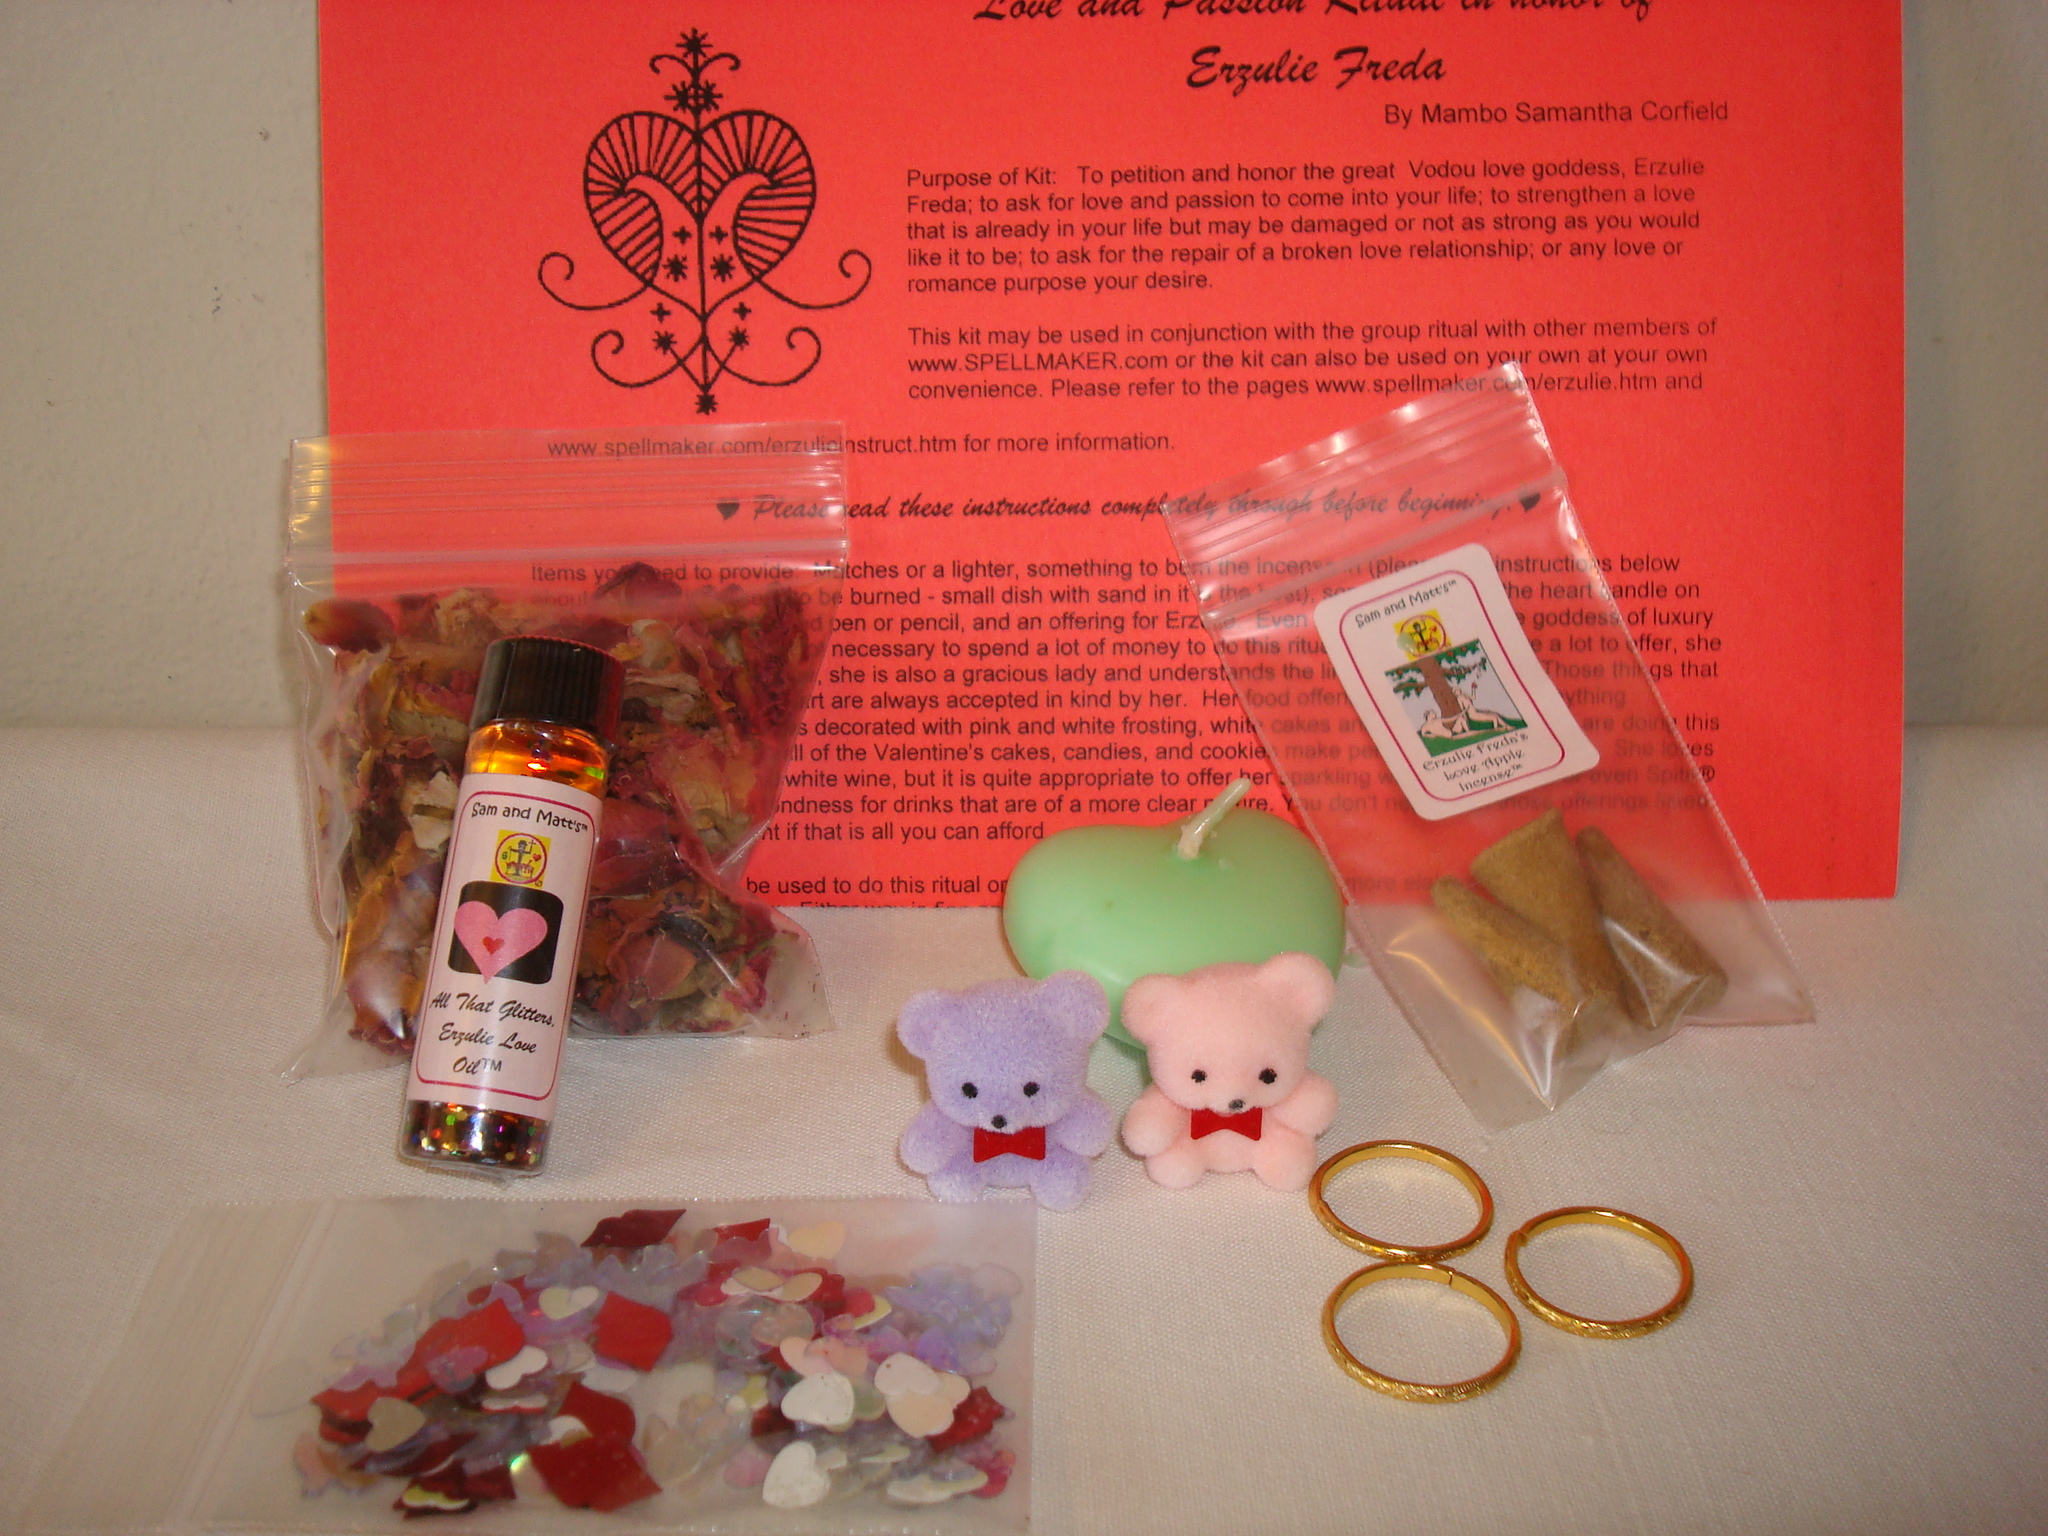 Erzulie Freda Love Spells, Love Magick, and Service to